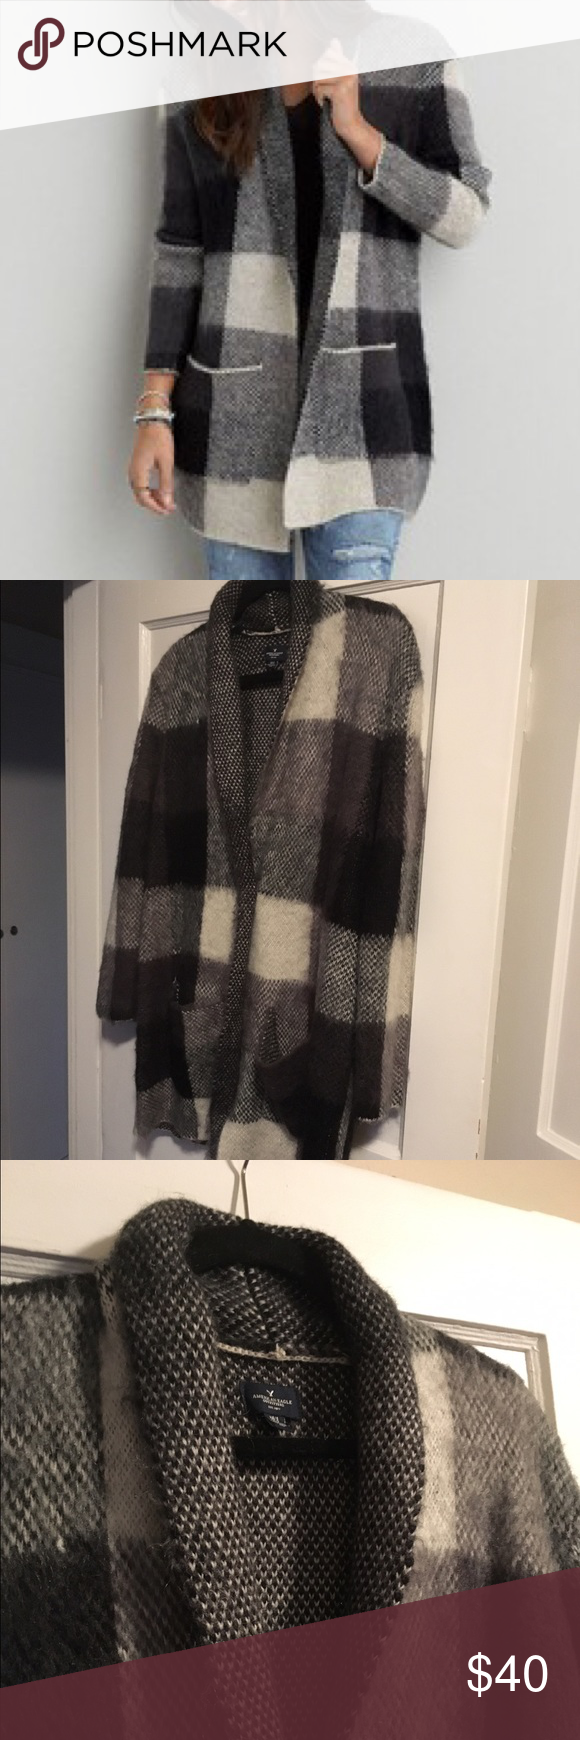 NWOT American Eagle oversized plaid blazer Amazing oversized menswear inspired blazer! Never been worn. Fabrication is: 40% acrylic, 35% nylon, 17% mohair, 8% wool American Eagle Outfitters Jackets & Coats Blazers